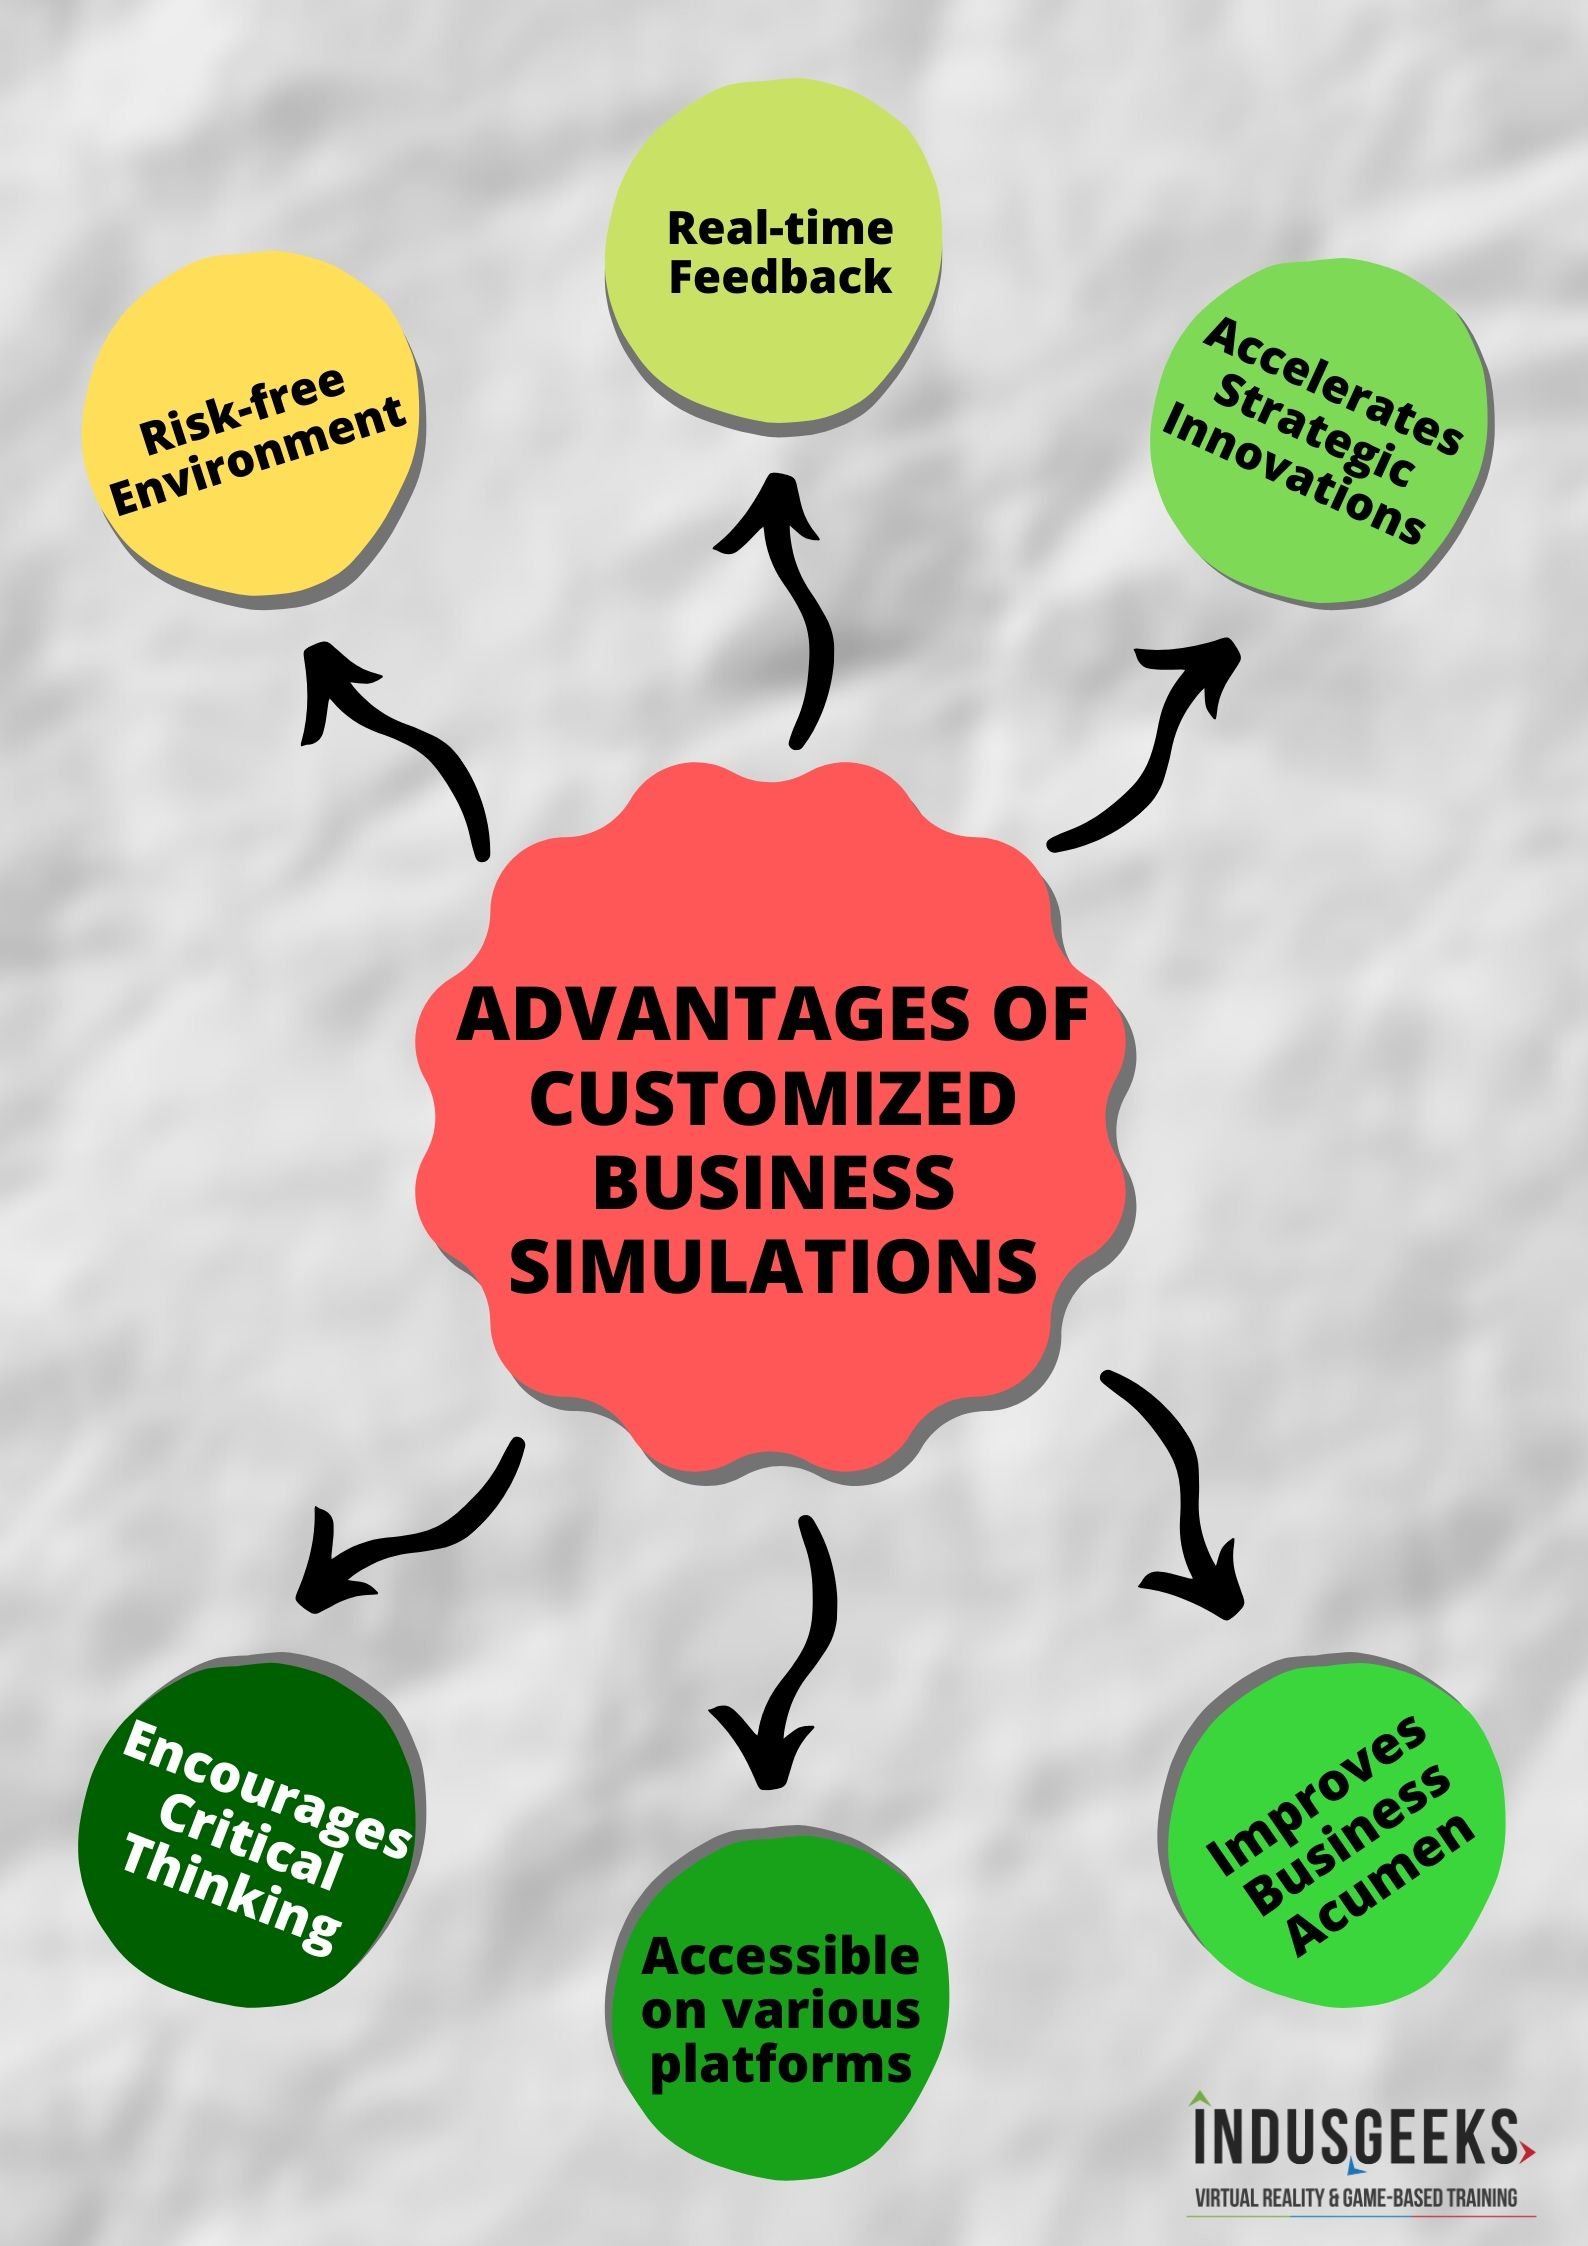 Advantages of Customized Business Simulations